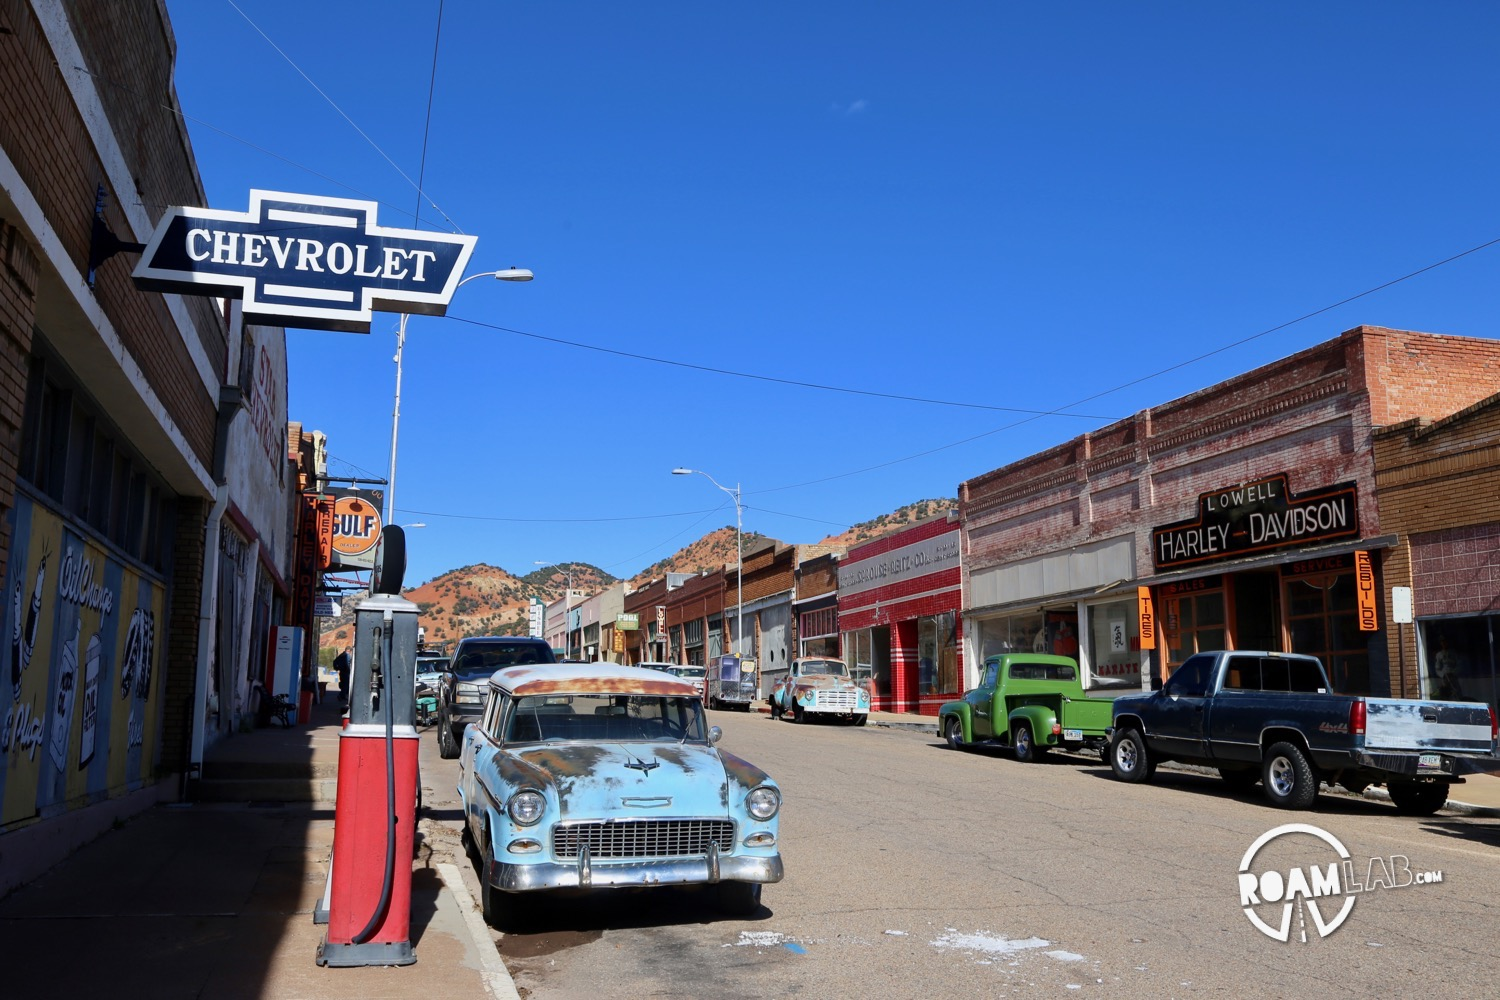 We visit the reimagined ghost town of Lowell, Arizona.